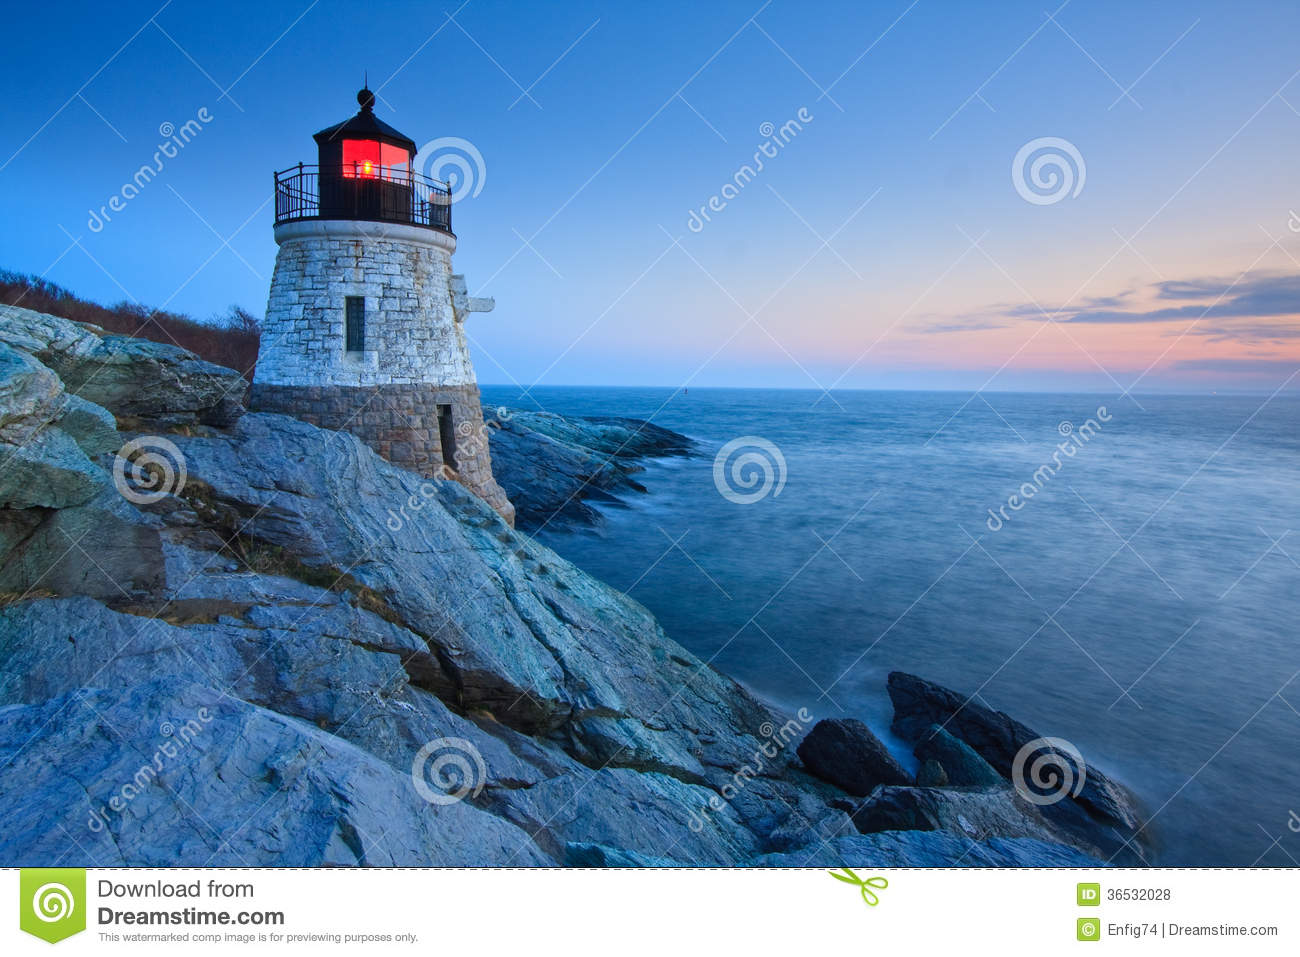 Castle Hill Lighthouse at dusk